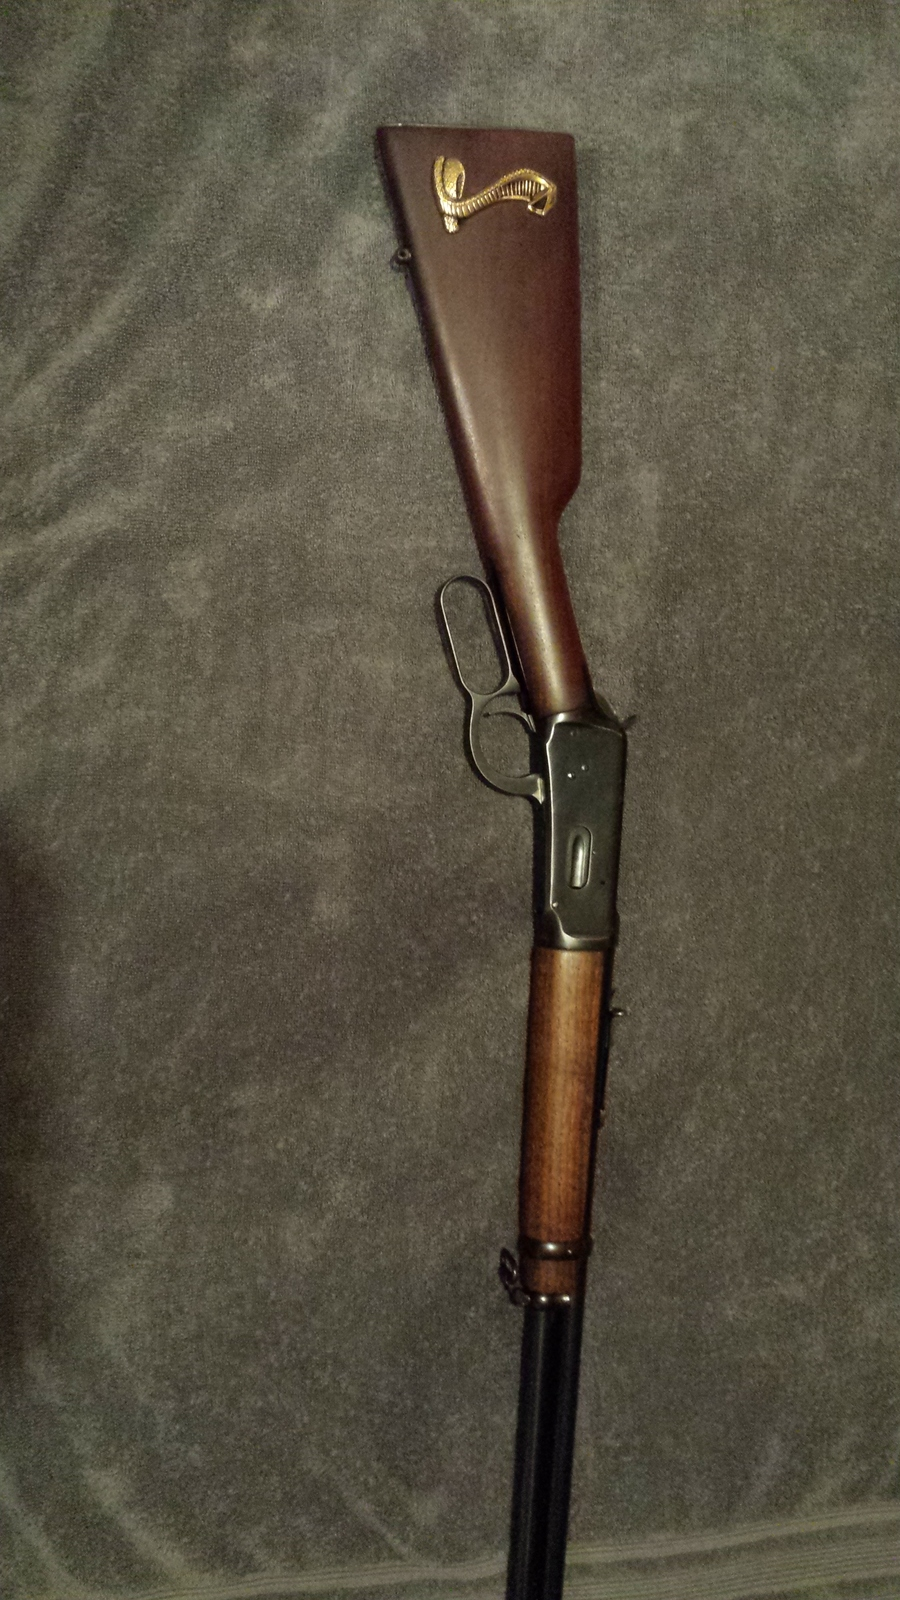 I Have A 1954 Winchester Model 94 30-30 With A Gold Cobra On